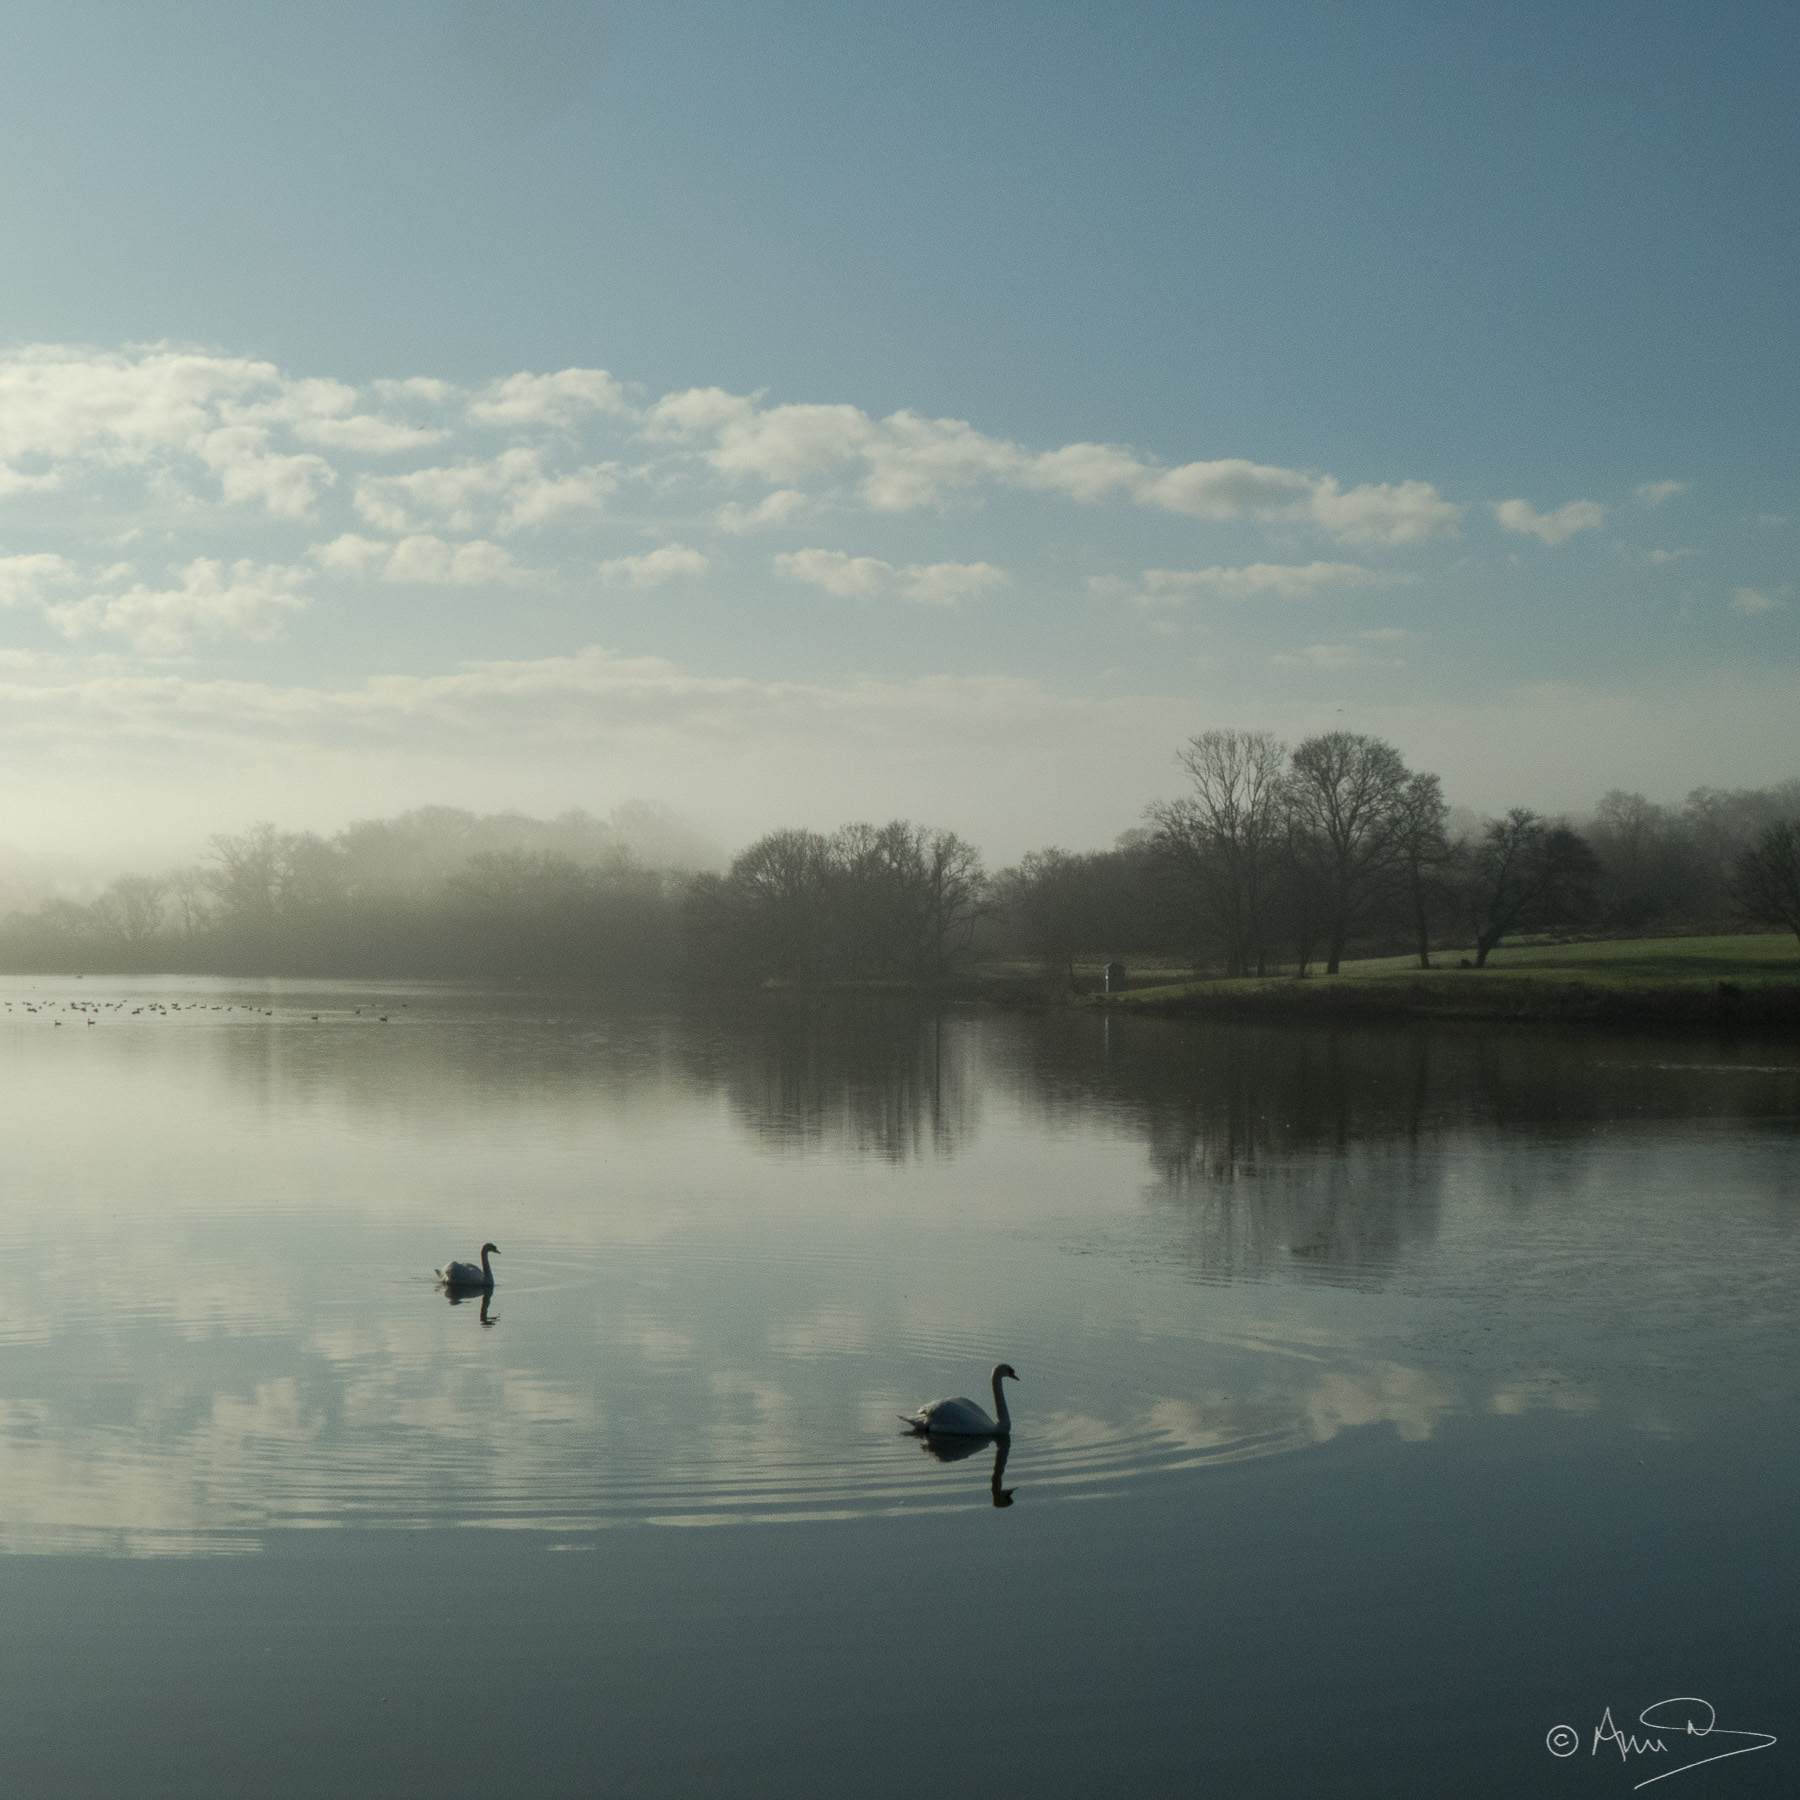 Misty morning with swans